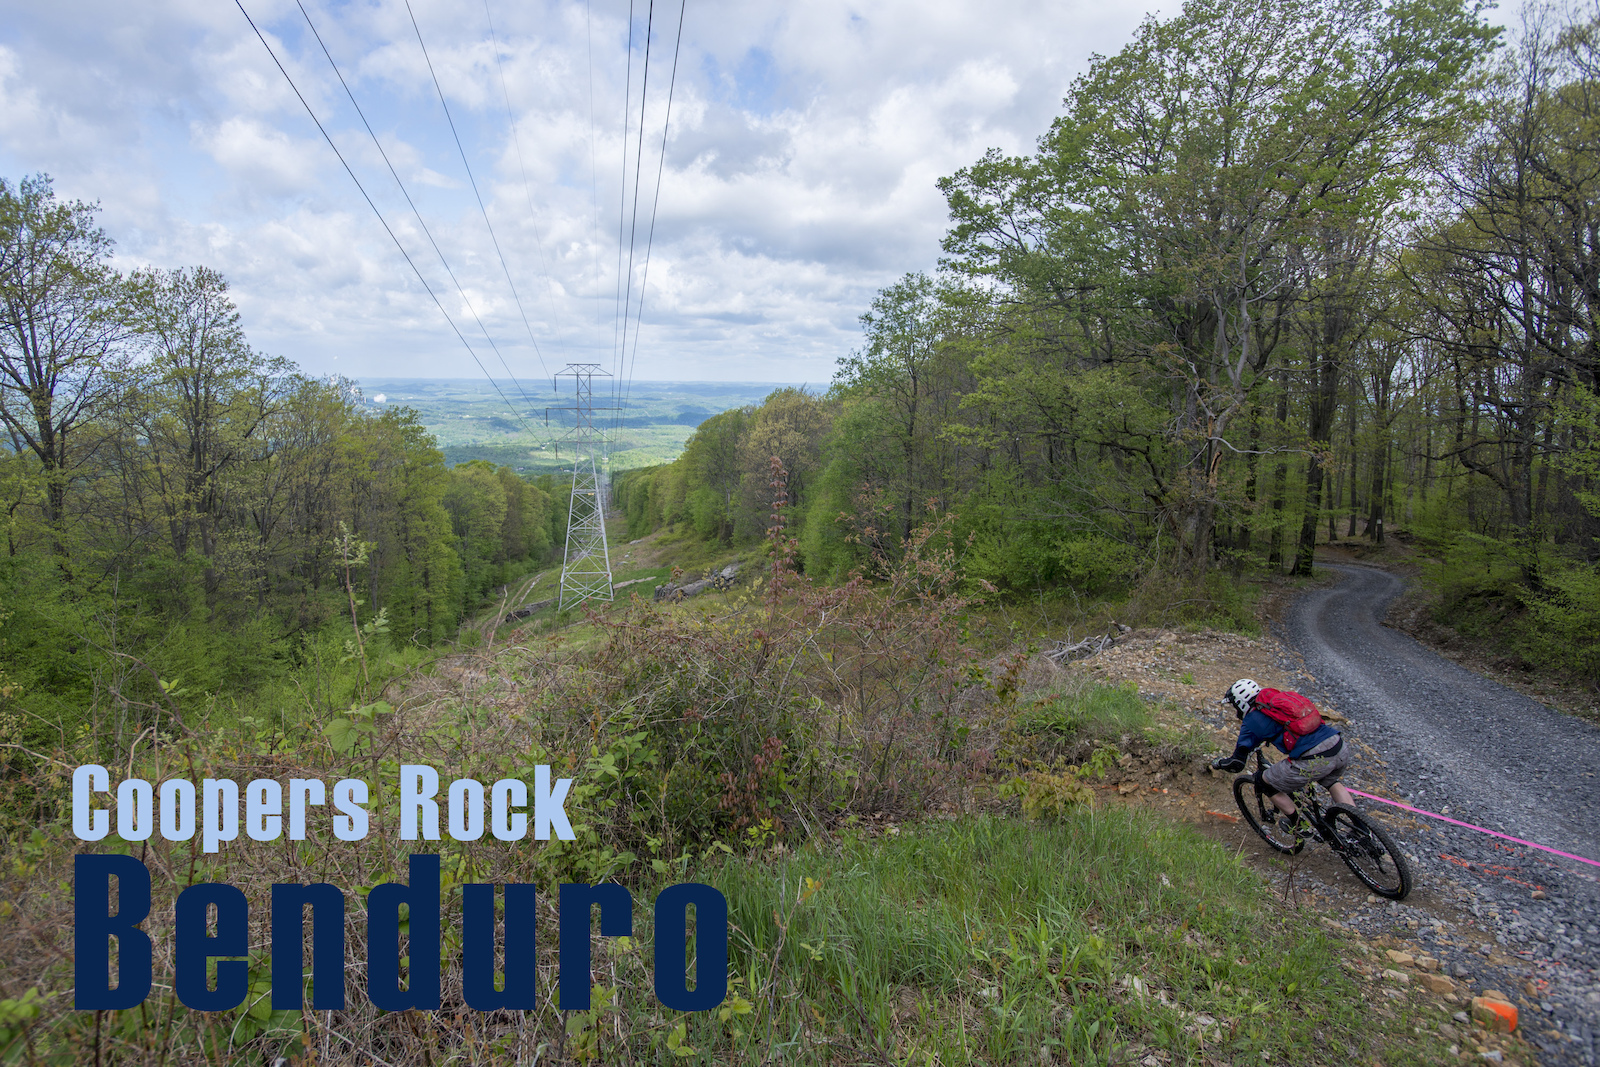 Coopers Rock Benduro 2016